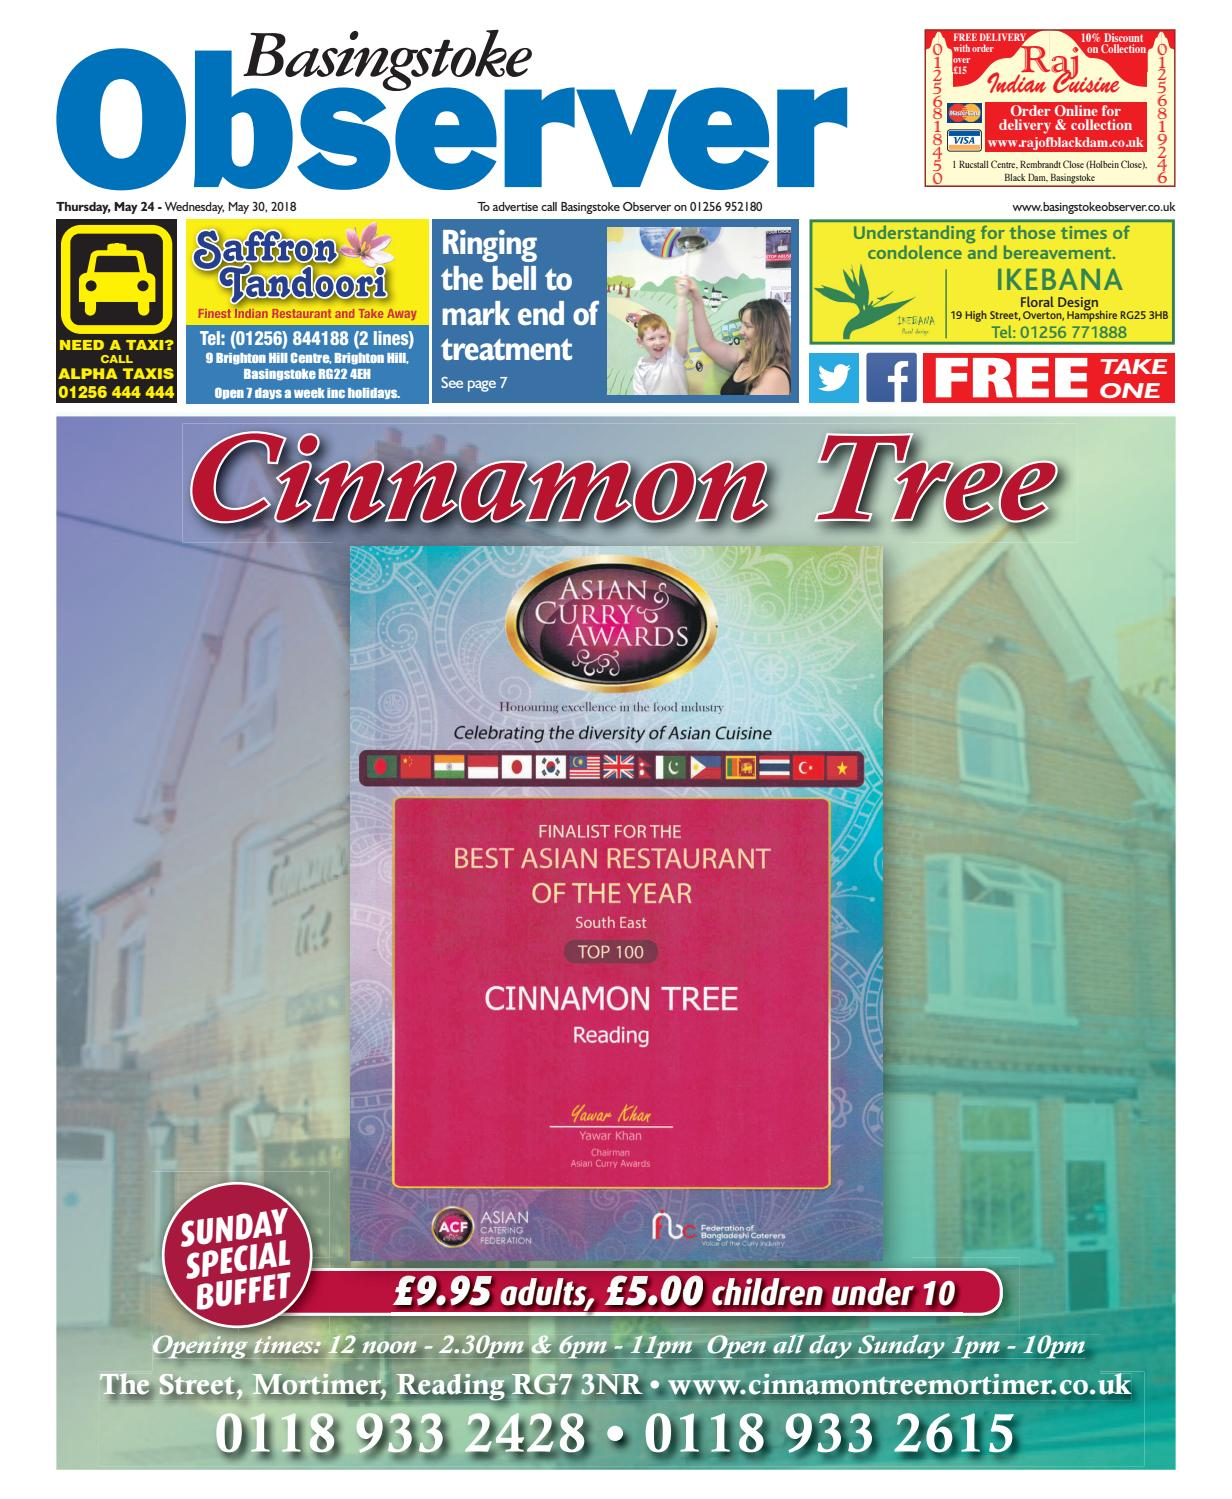 24 may 2018 basingstoke observer by Taylor Newspapers - issuu